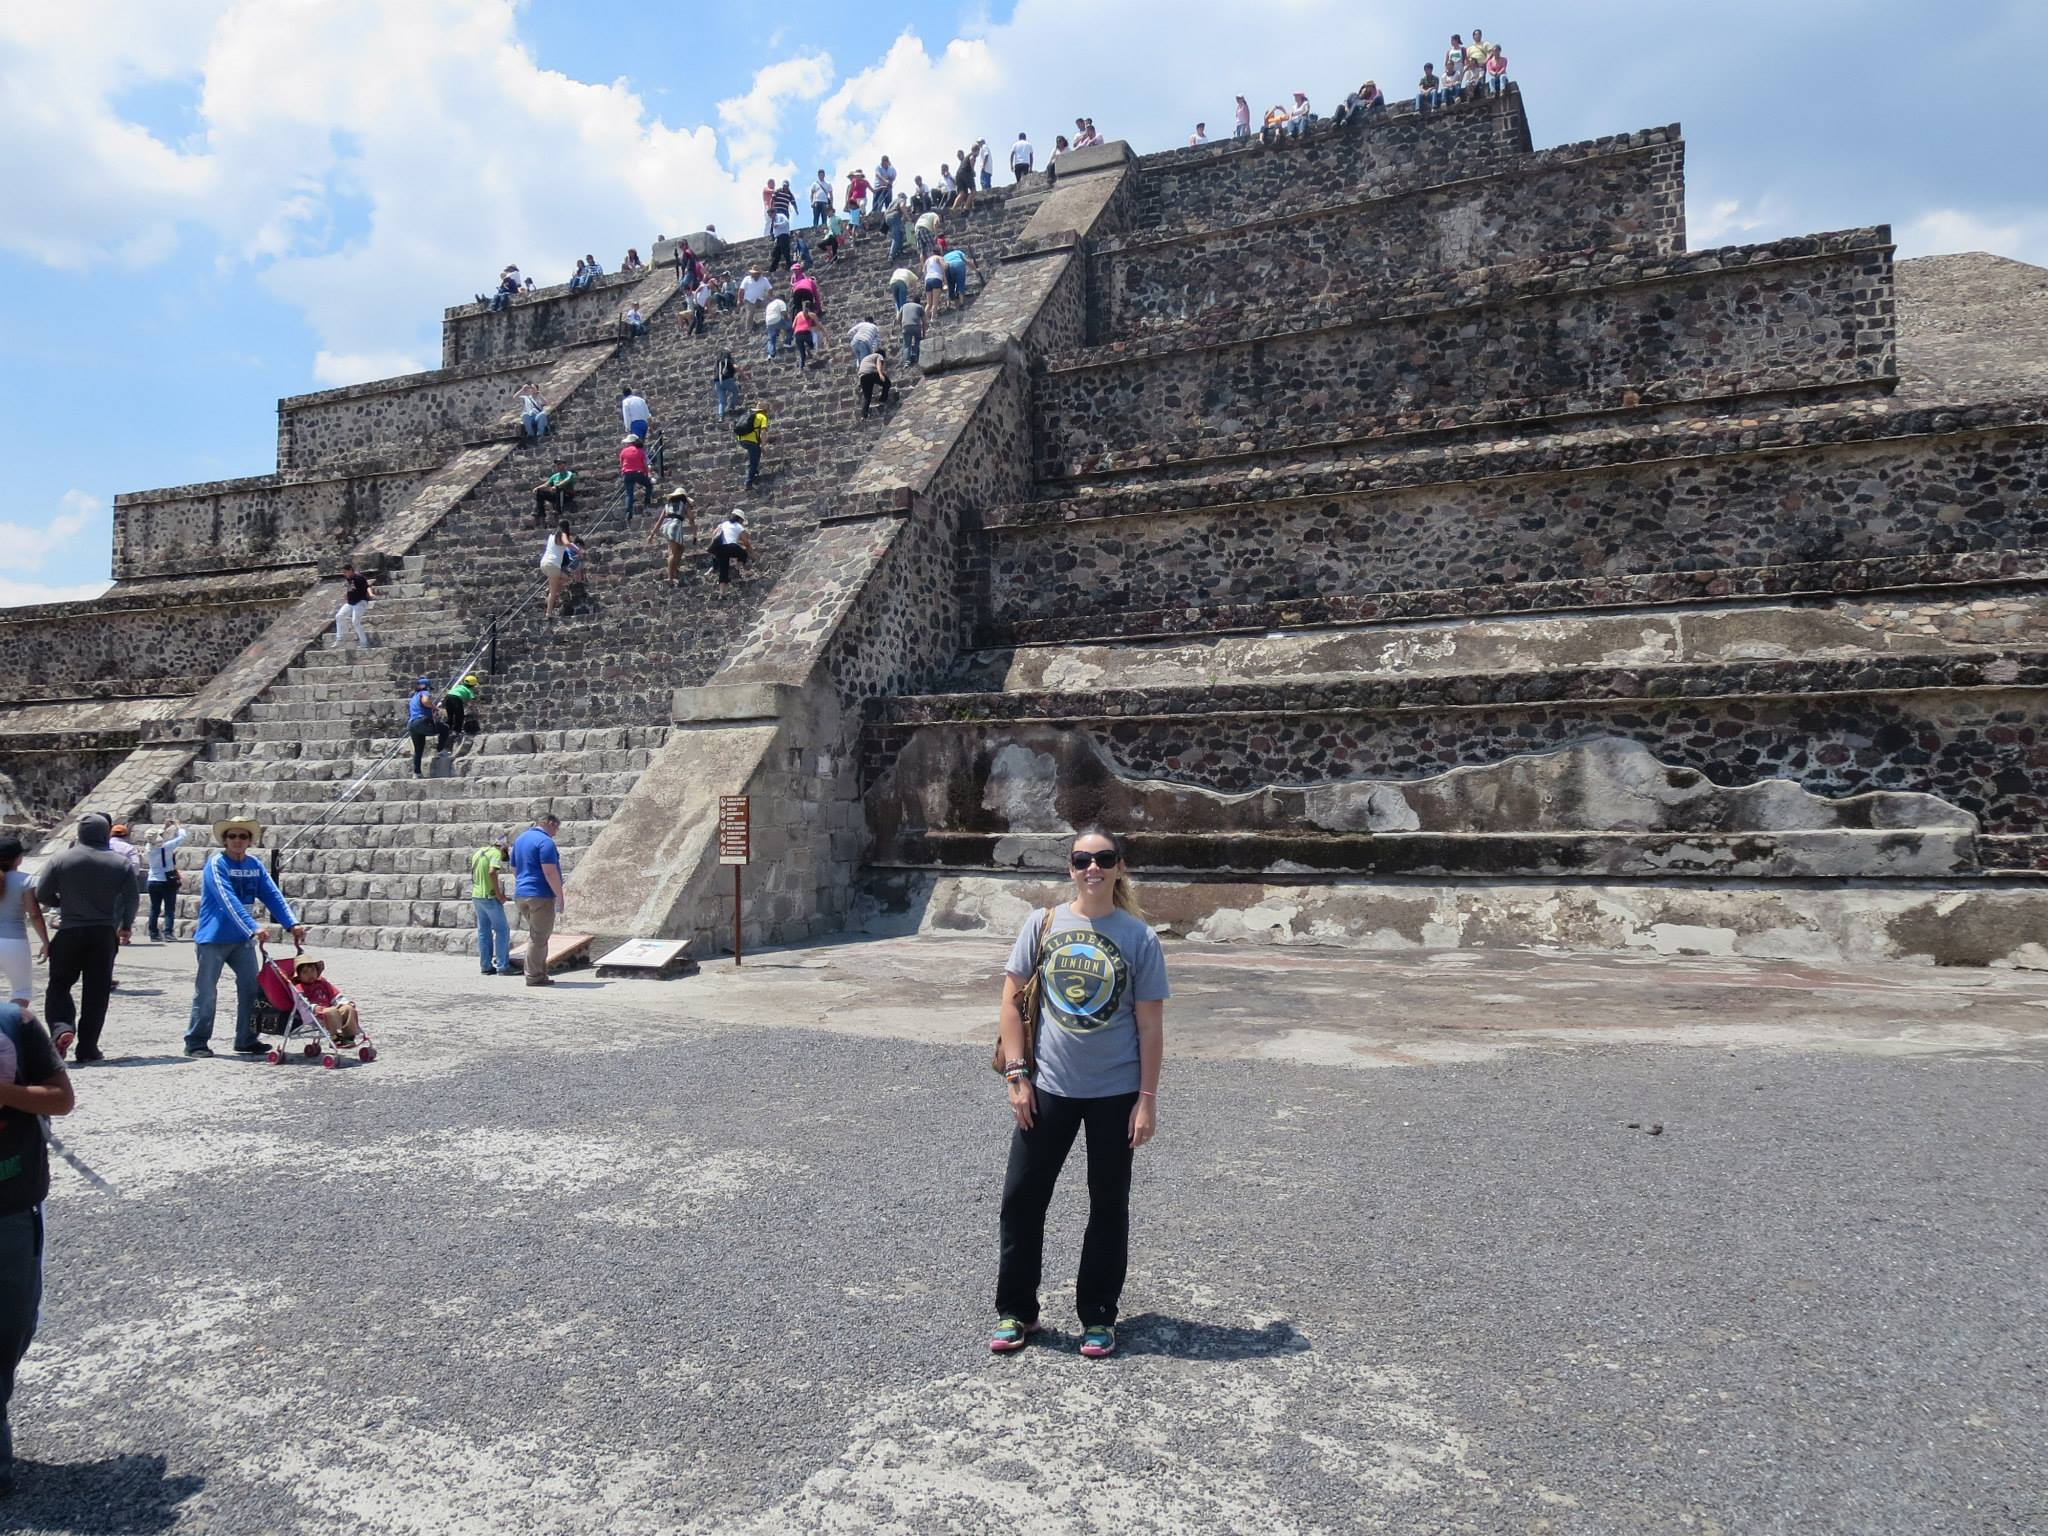 This is me at the Teotihuacan Pyramids in Mexico City, a trip Fer and I took to celebrate my one year sober, just days before I published my viral blog post. I had no idea where life was going to take me.